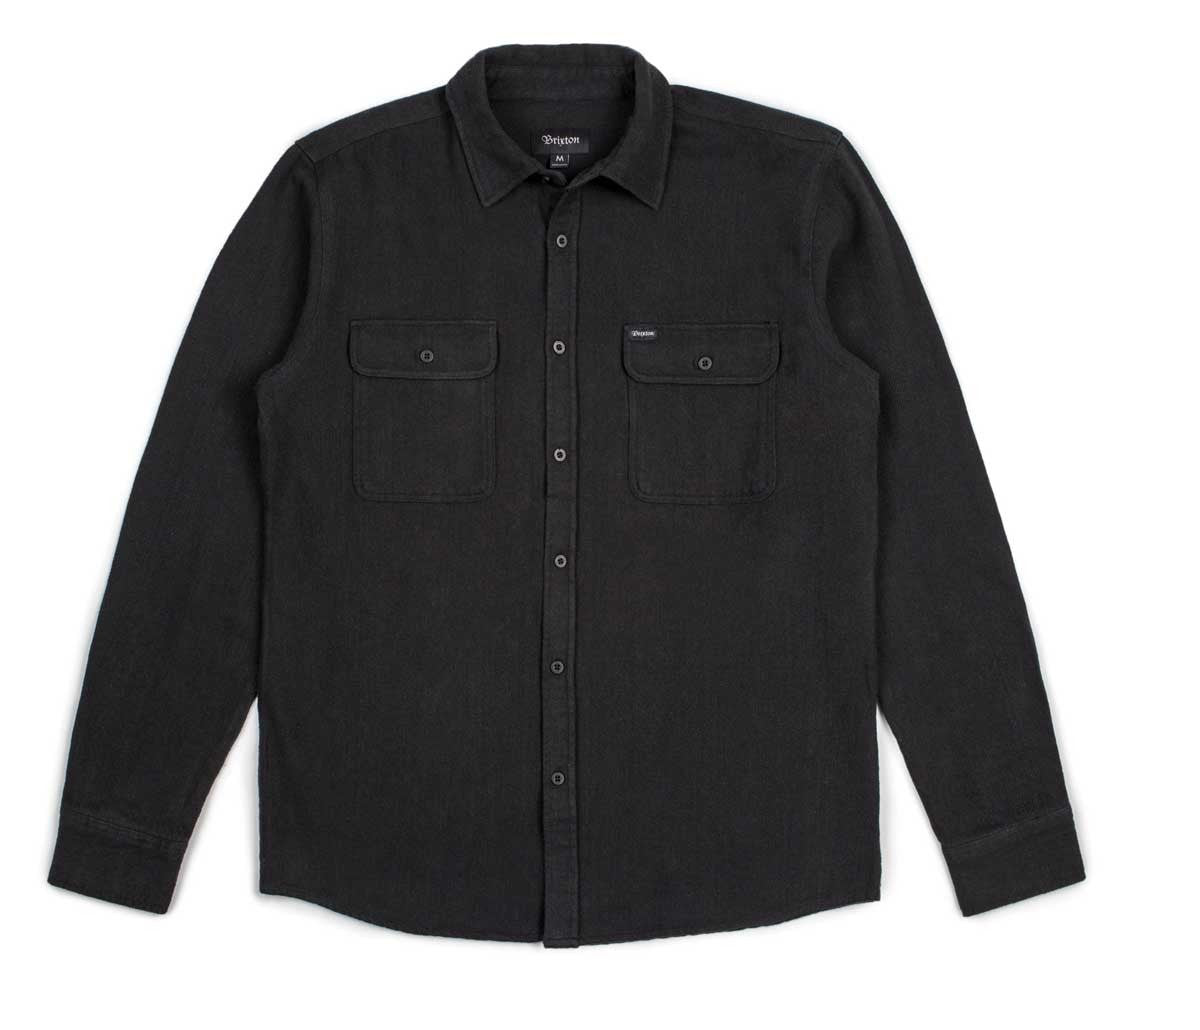 Brixton - Donez Men's Flannel L/S Shirt, Black/Black - The Giant Peach